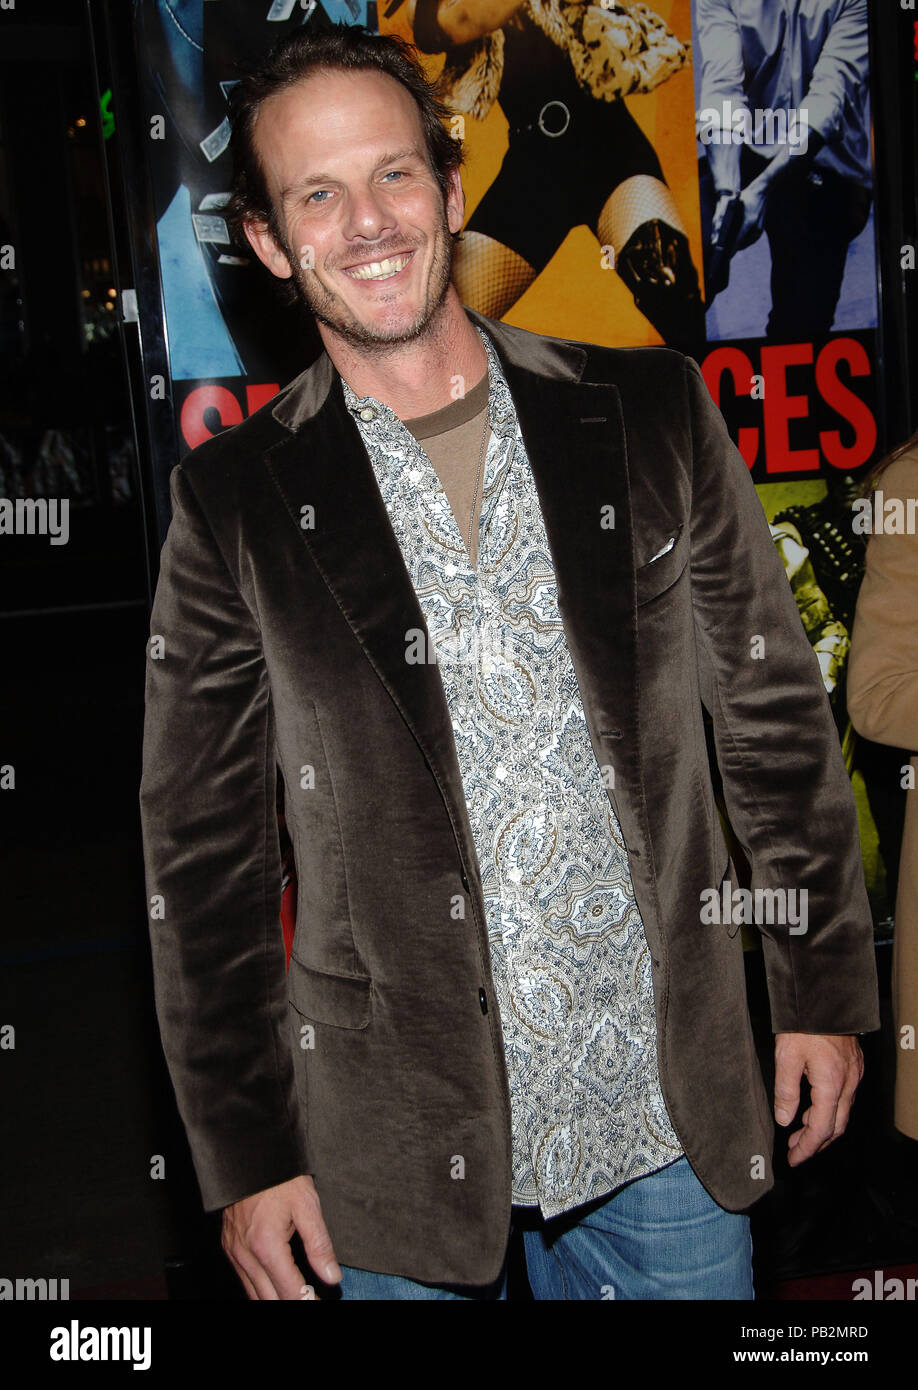 Peter Berg arriving at the Smokin' Aces at the Chinese Theatre In Los Angeles. January 18, 2007.  smile 3/4BergPeter015 Red Carpet Event, Vertical, USA, Film Industry, Celebrities,  Photography, Bestof, Arts Culture and Entertainment, Topix Celebrities fashion /  Vertical, Best of, Event in Hollywood Life - California,  Red Carpet and backstage, USA, Film Industry, Celebrities,  movie celebrities, TV celebrities, Music celebrities, Photography, Bestof, Arts Culture and Entertainment,  Topix, vertical, one person,, from the years , 2006 to 2009, inquiry tsuni@Gamma-USA.com - Three Quarters - Stock Image